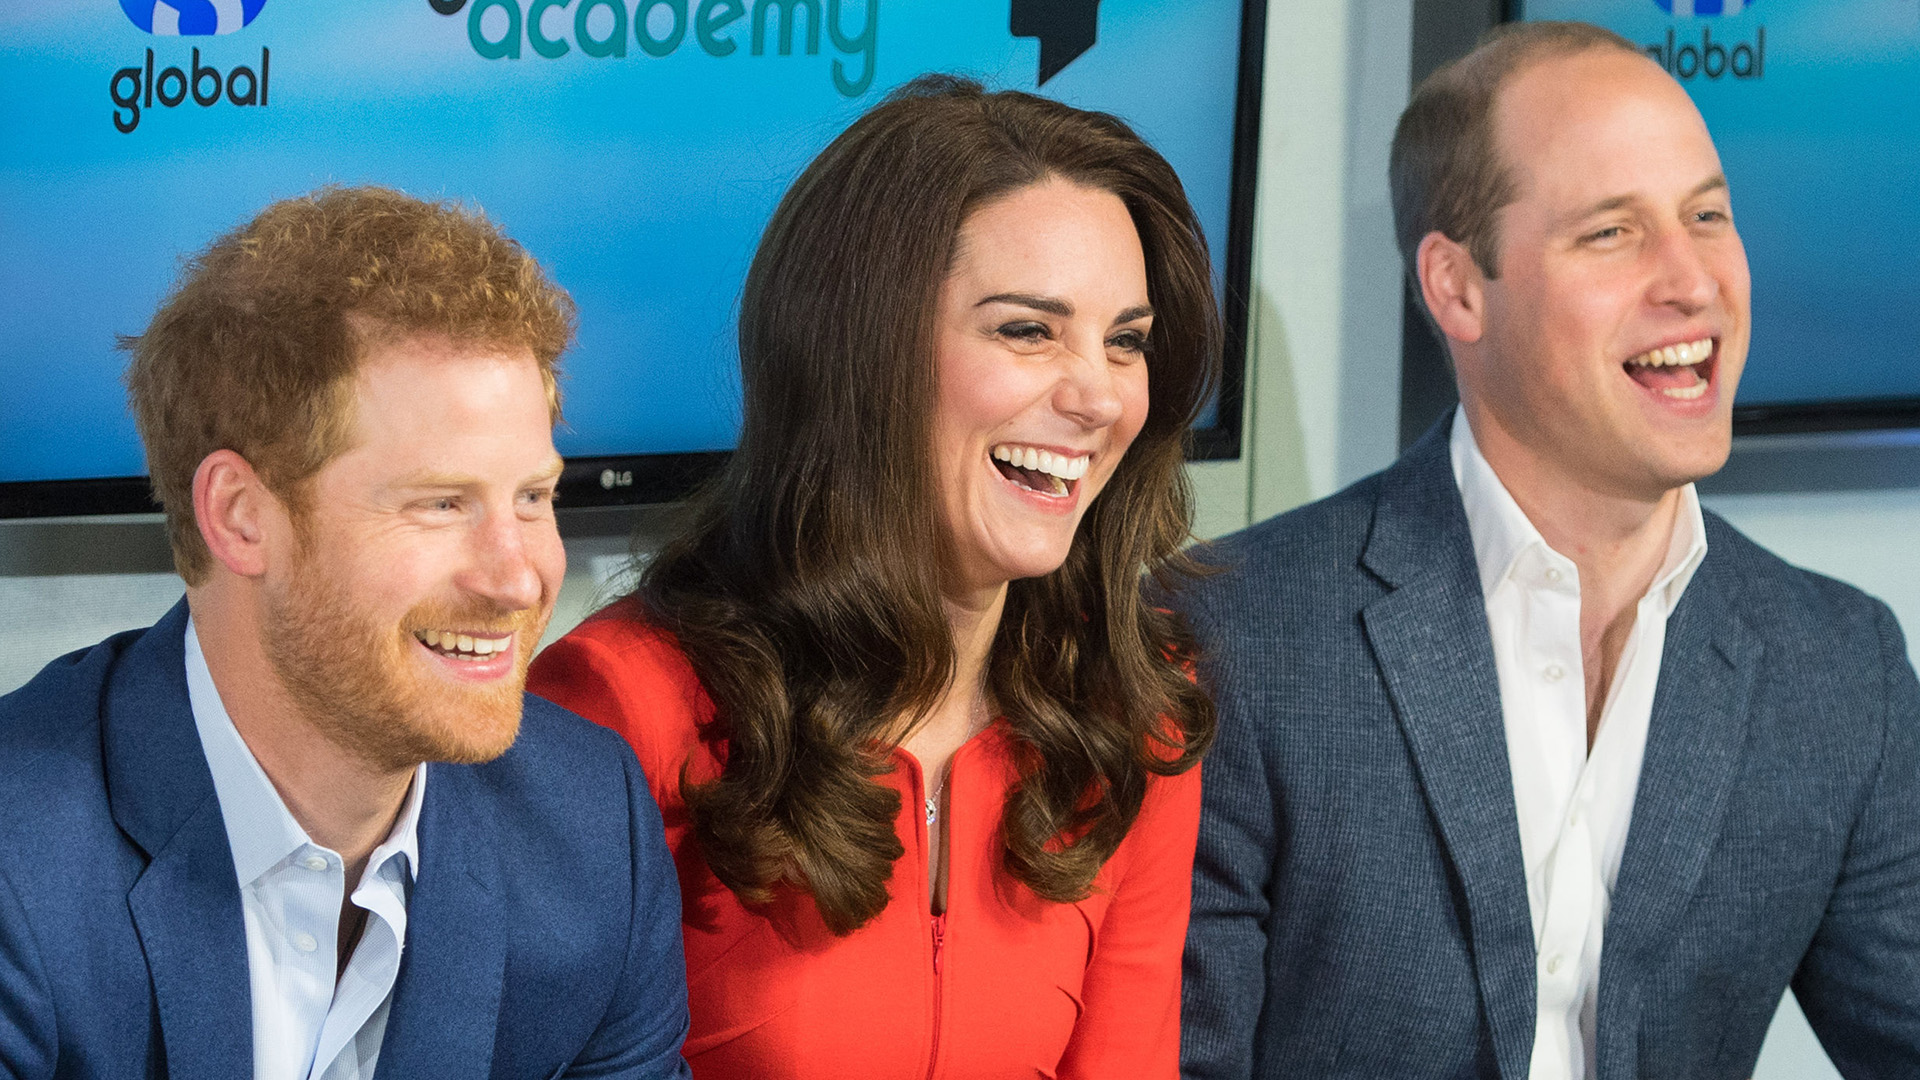 The royals are hiring! How to work for Prince William, Prince Harry and Duchess Kate